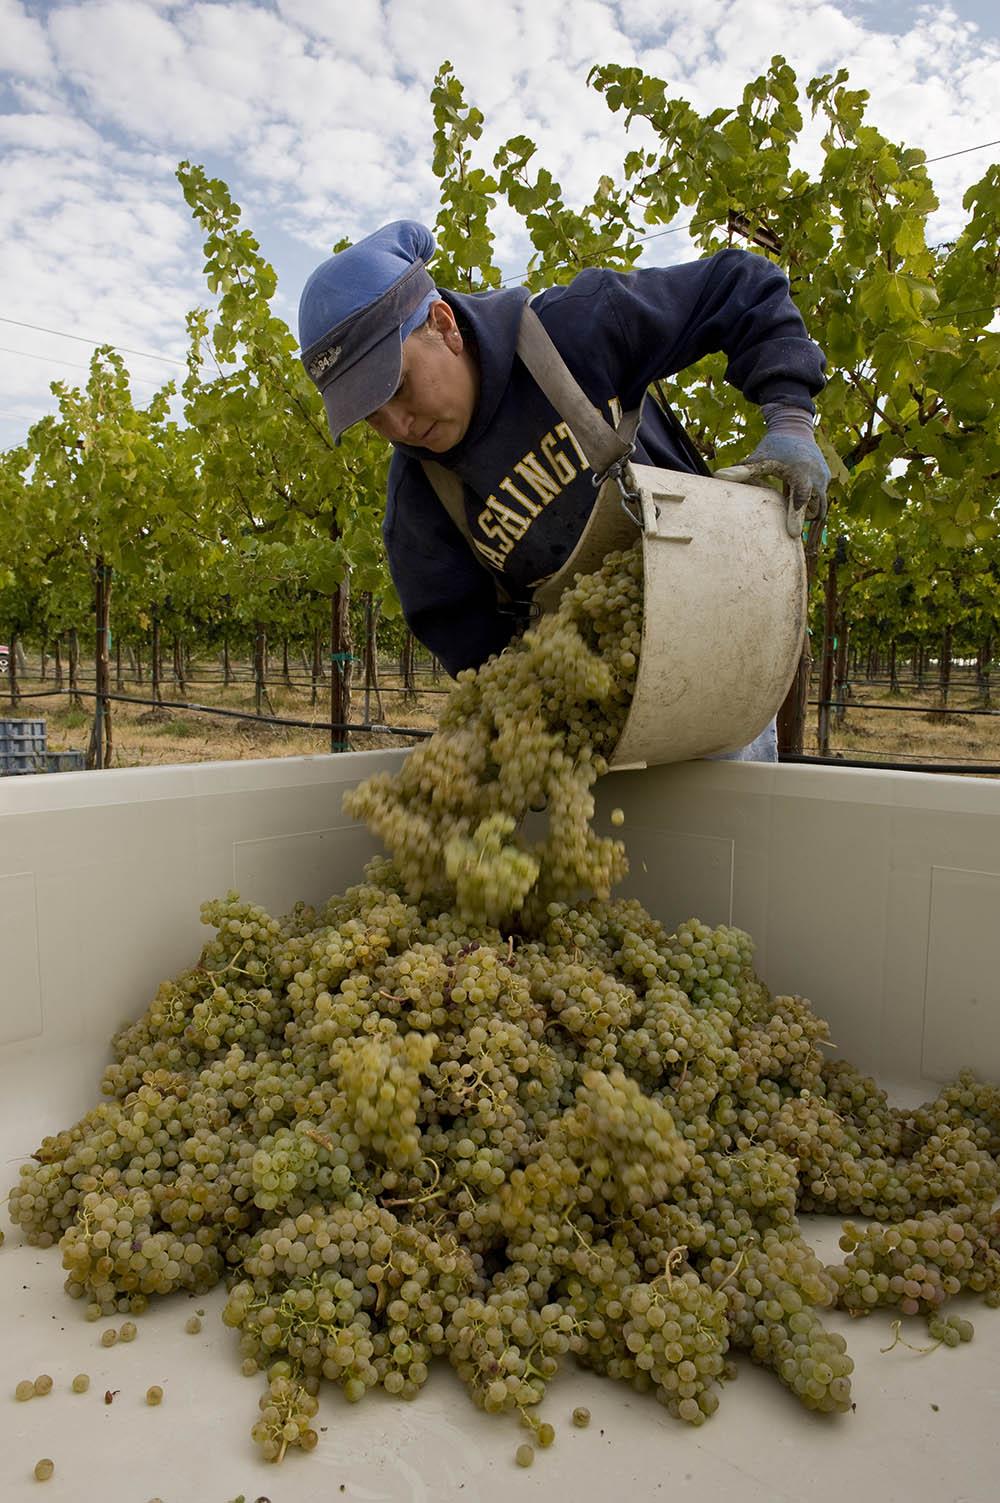 Sémillon being harvested in the Yakima Valley / Photo by Andrea Johnson